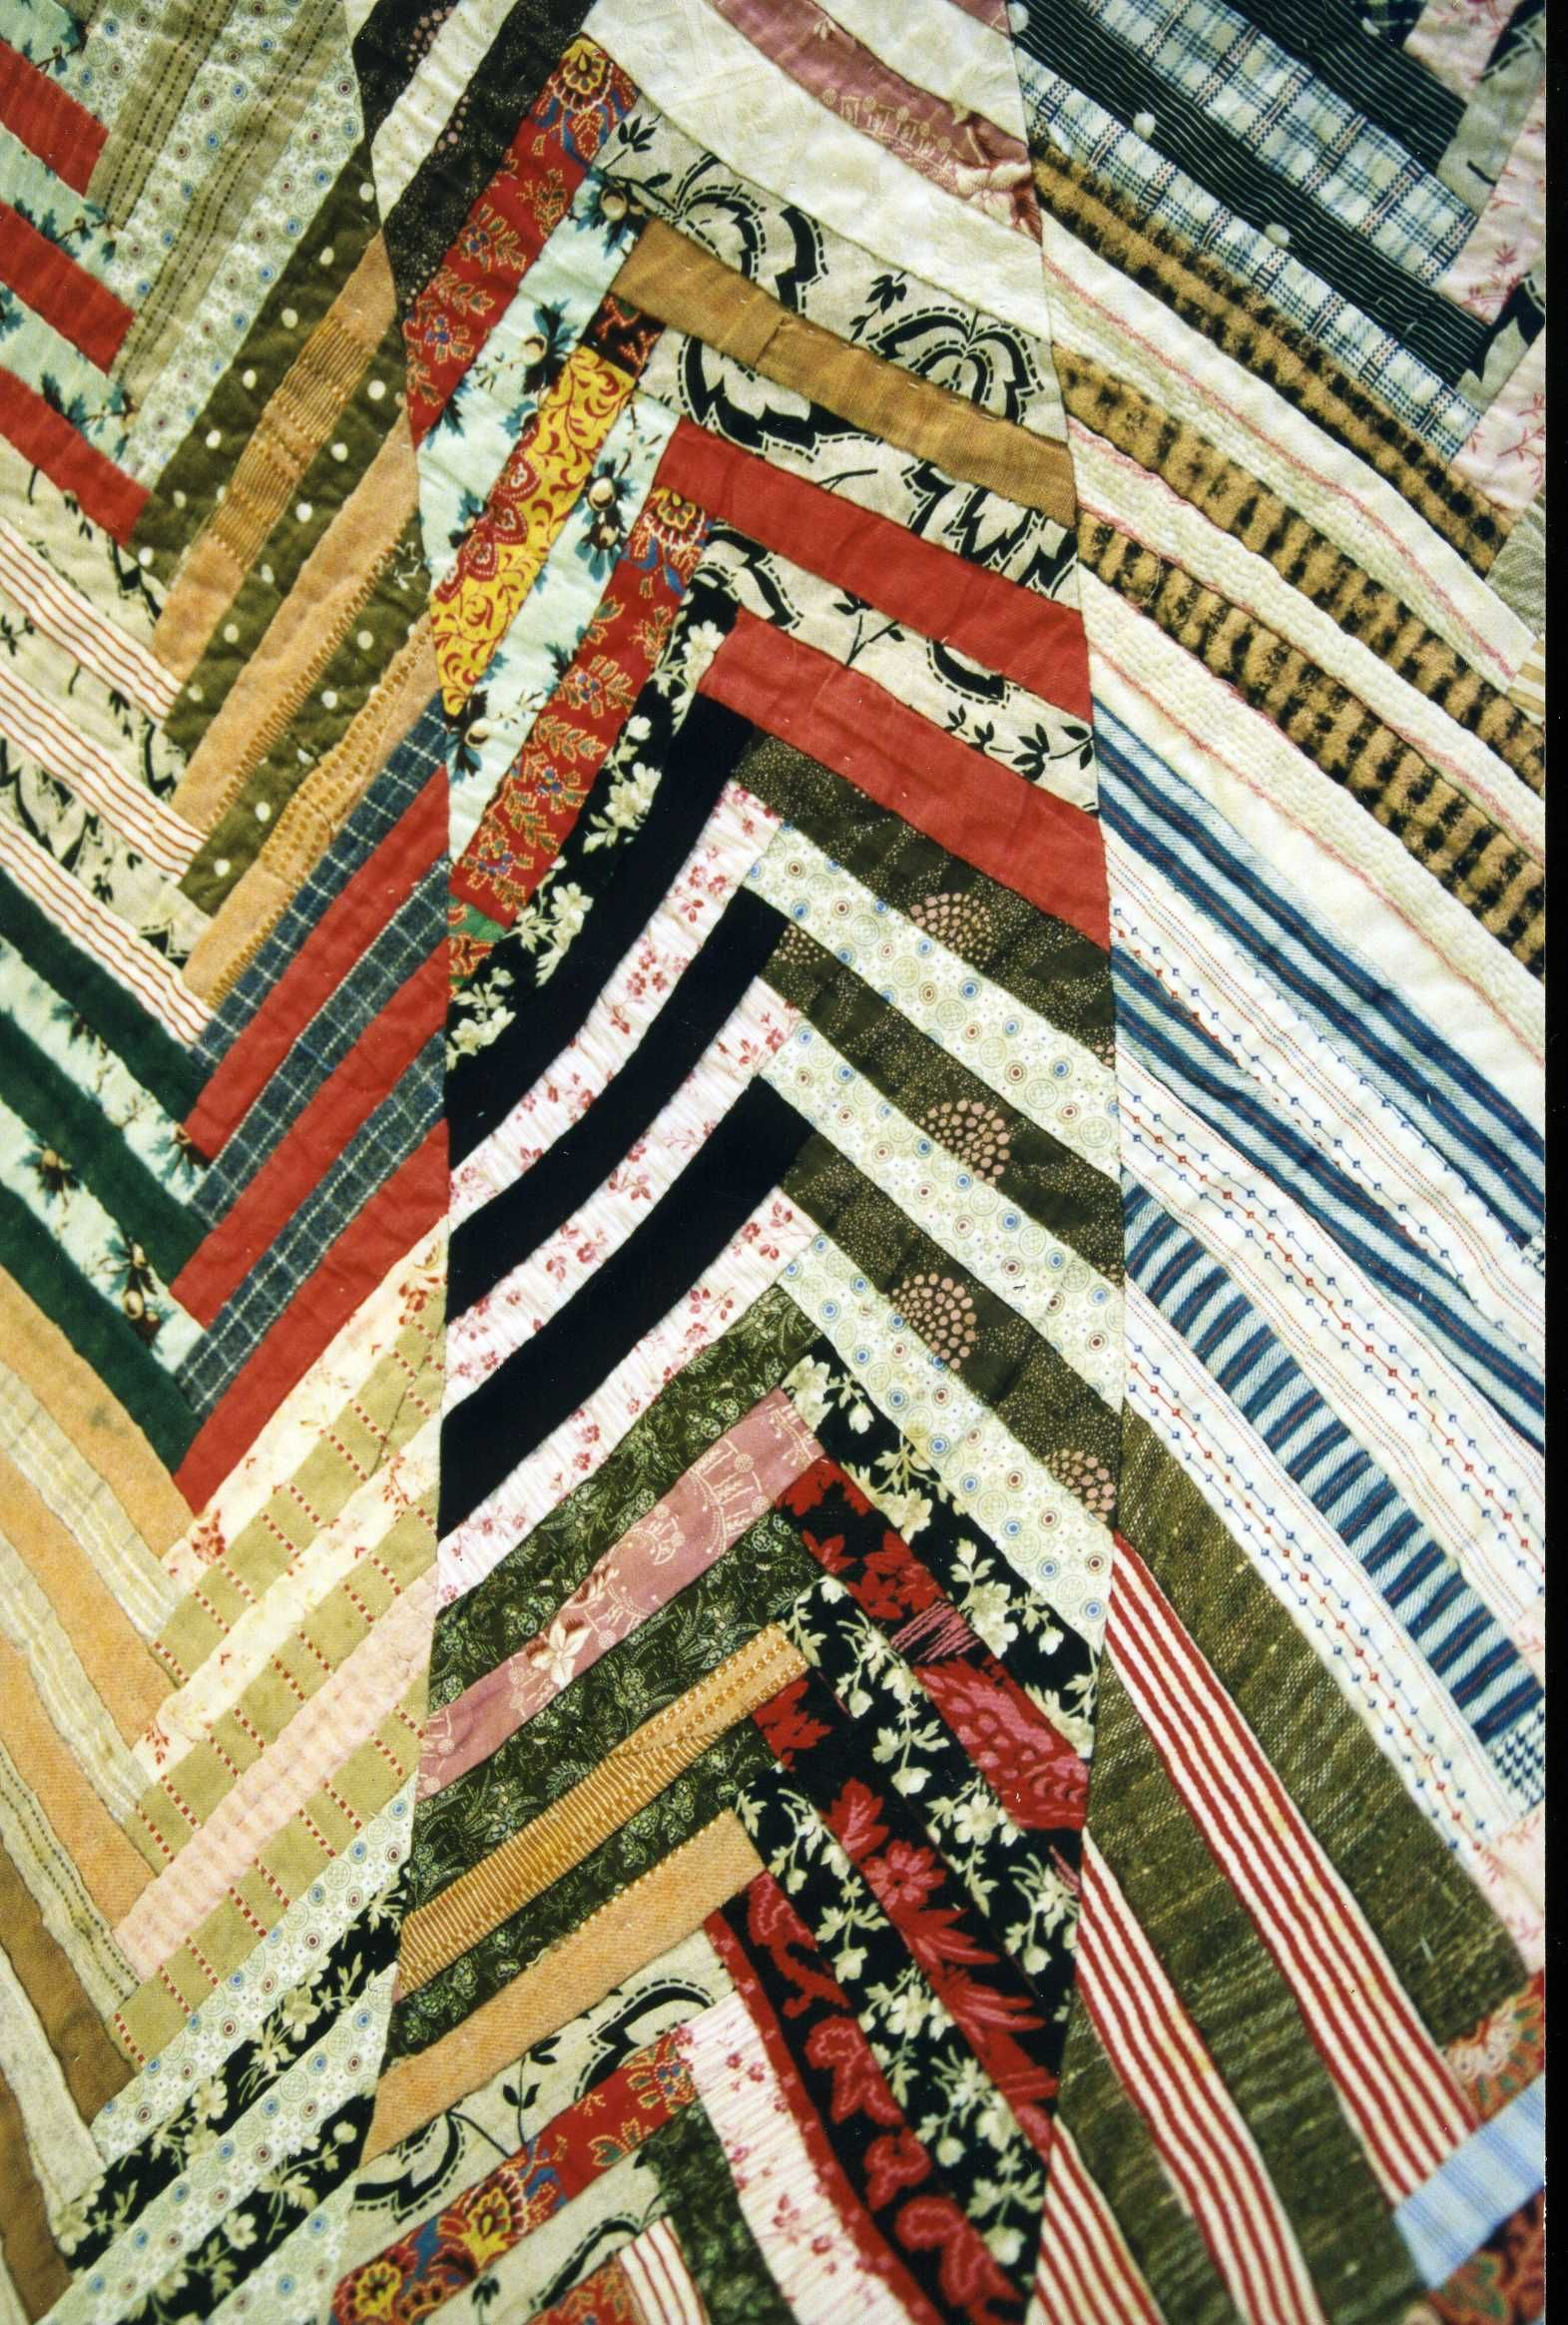 c.1880 - 1900 A colourful cotton and wool strippy Chevron quilt, hand quilted and hand and machine sewn. Strips of fabric pieced in 'V's in log cabin style to make long lengths. The lengths were then joined together to create a zig-zag effect across the quilt. Quilted in straight zig-zag and diagonal lines.